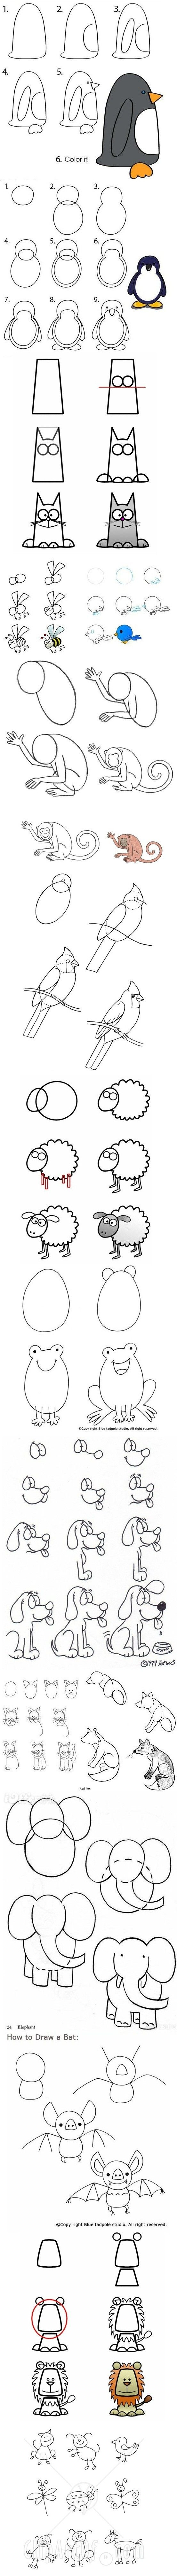 How-To: Draw Cute Animals Fun for kids!!